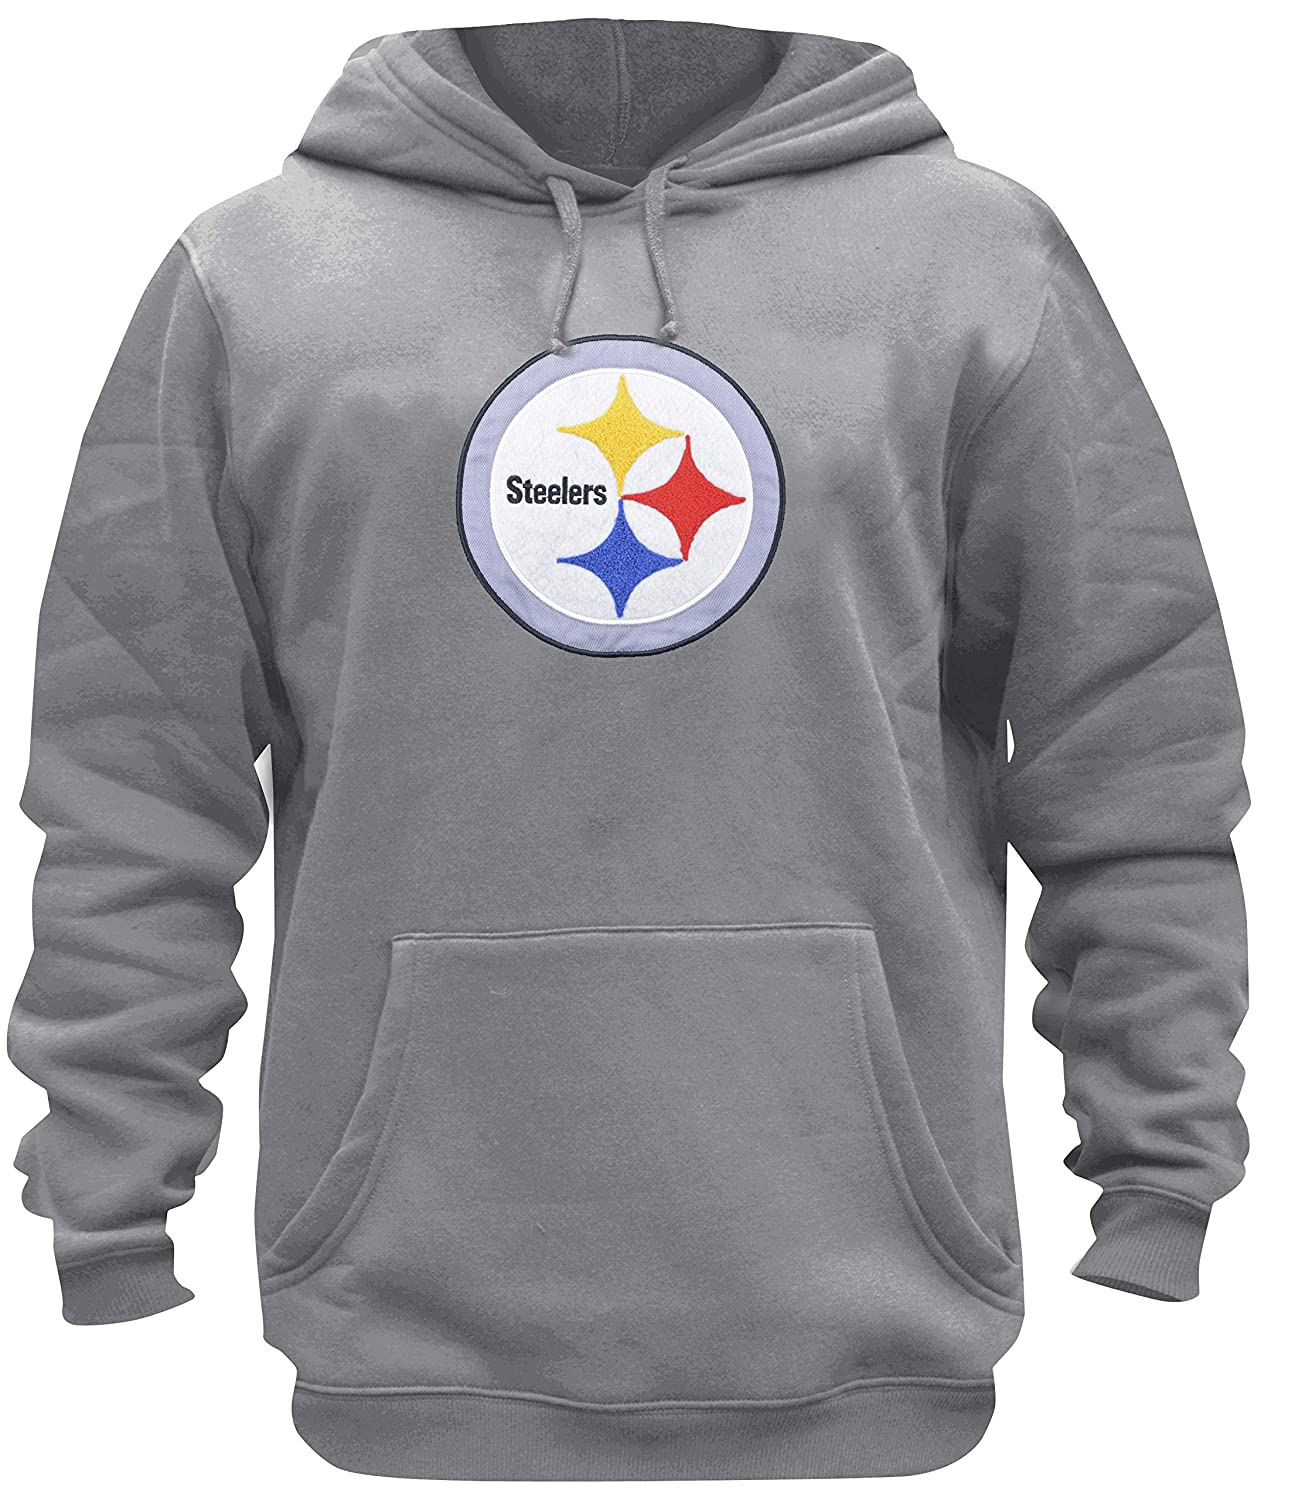 brand new 63ad3 1b64d BKD Mens Athletic Steelers Embroidery Cotton Sweatshirt Pullover Hoodie Grey